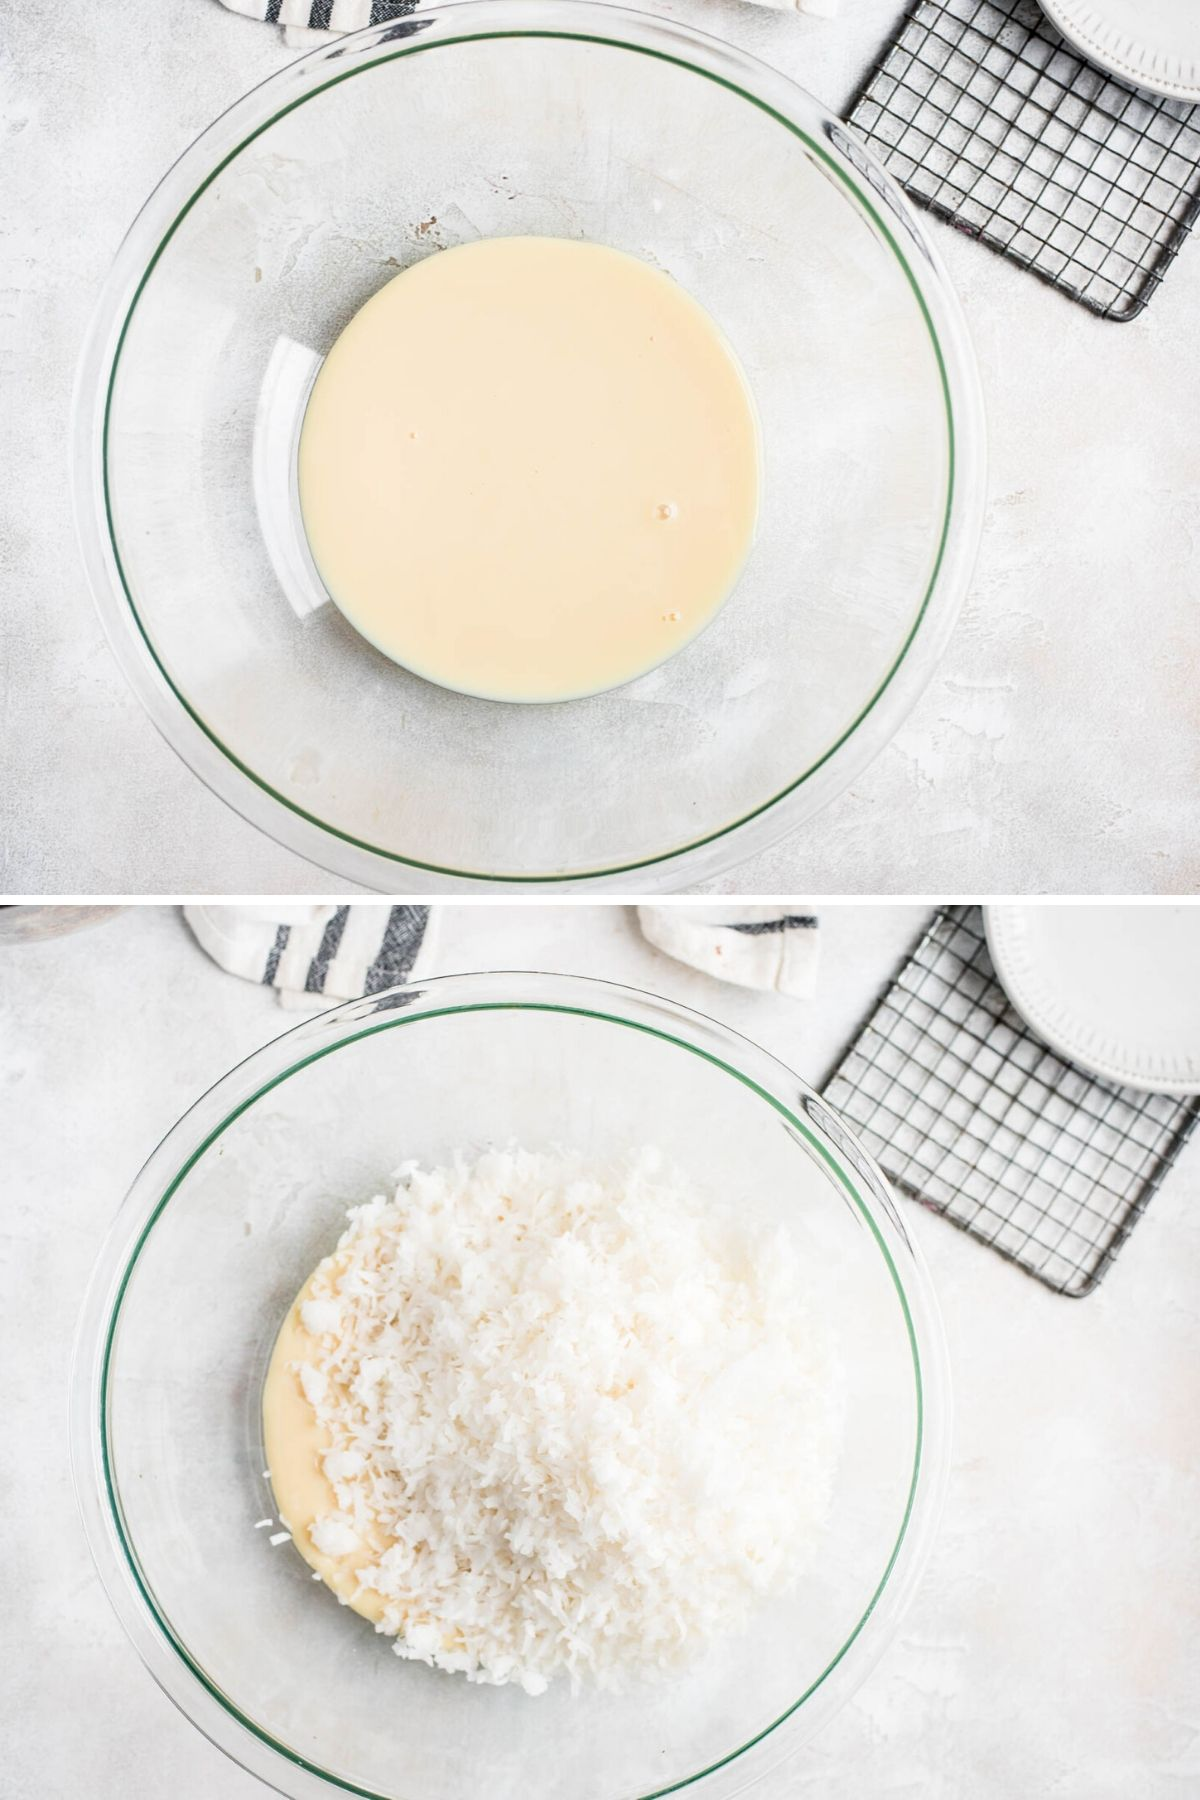 Mixing ingredients into sweetened condensed milk